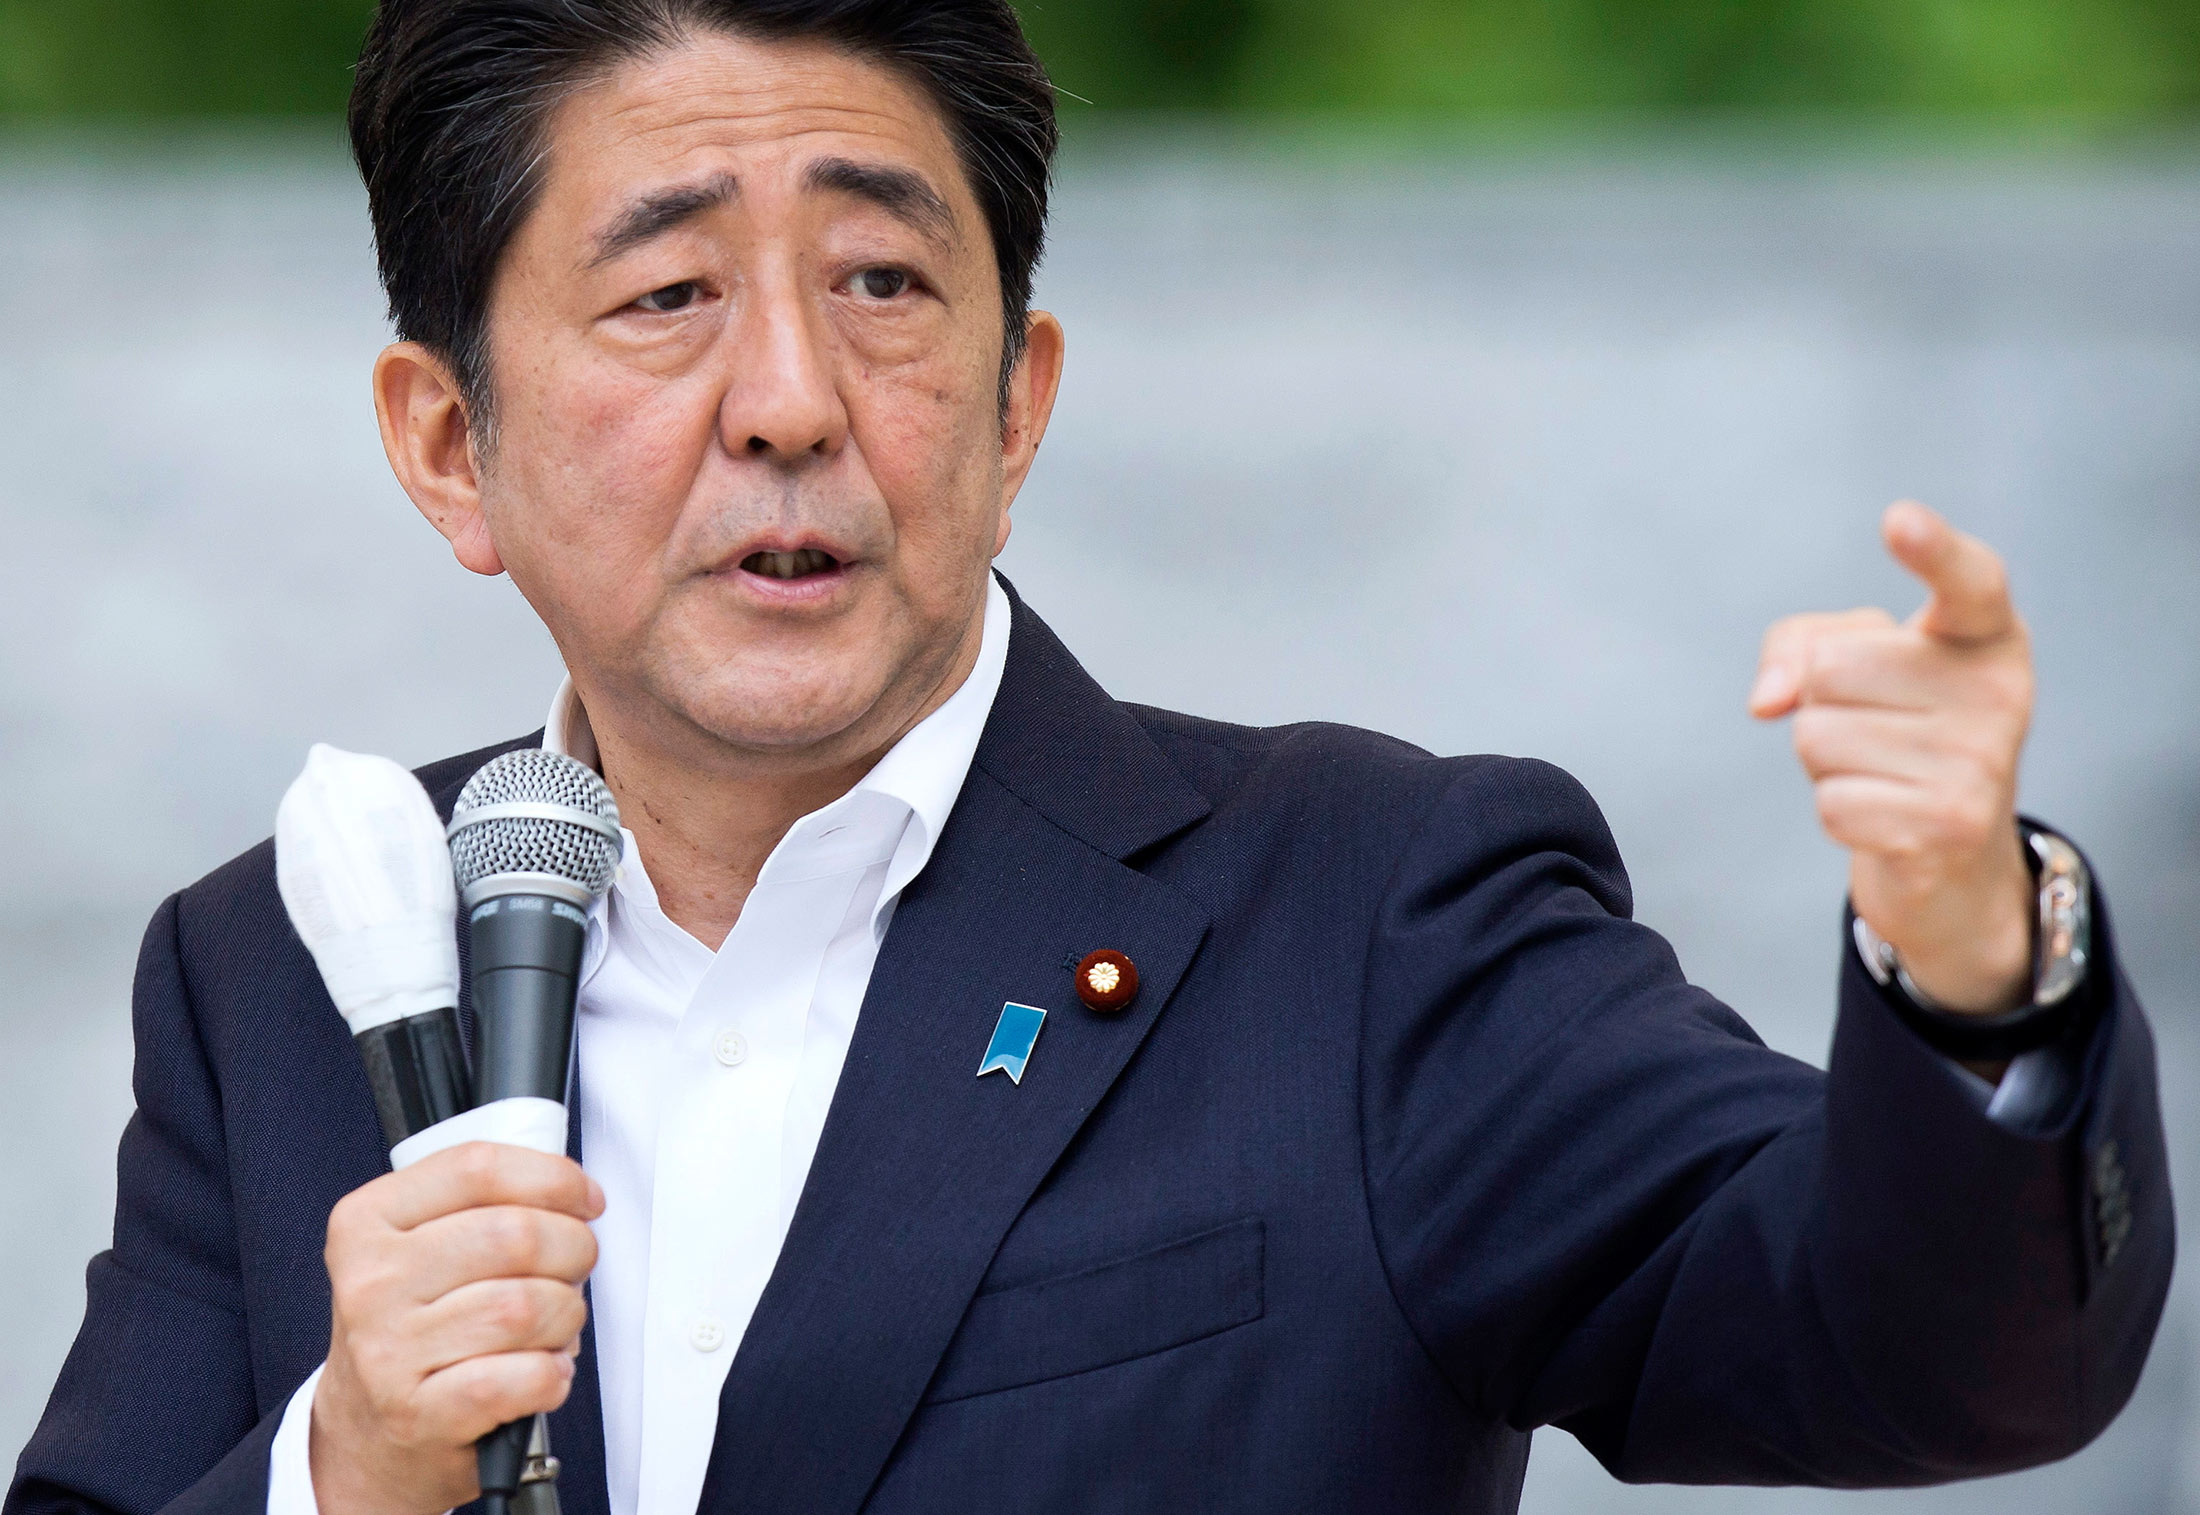 Abenomics Return to Fiscal Lever Shows Failure to Hit High Goals - Bloomberg